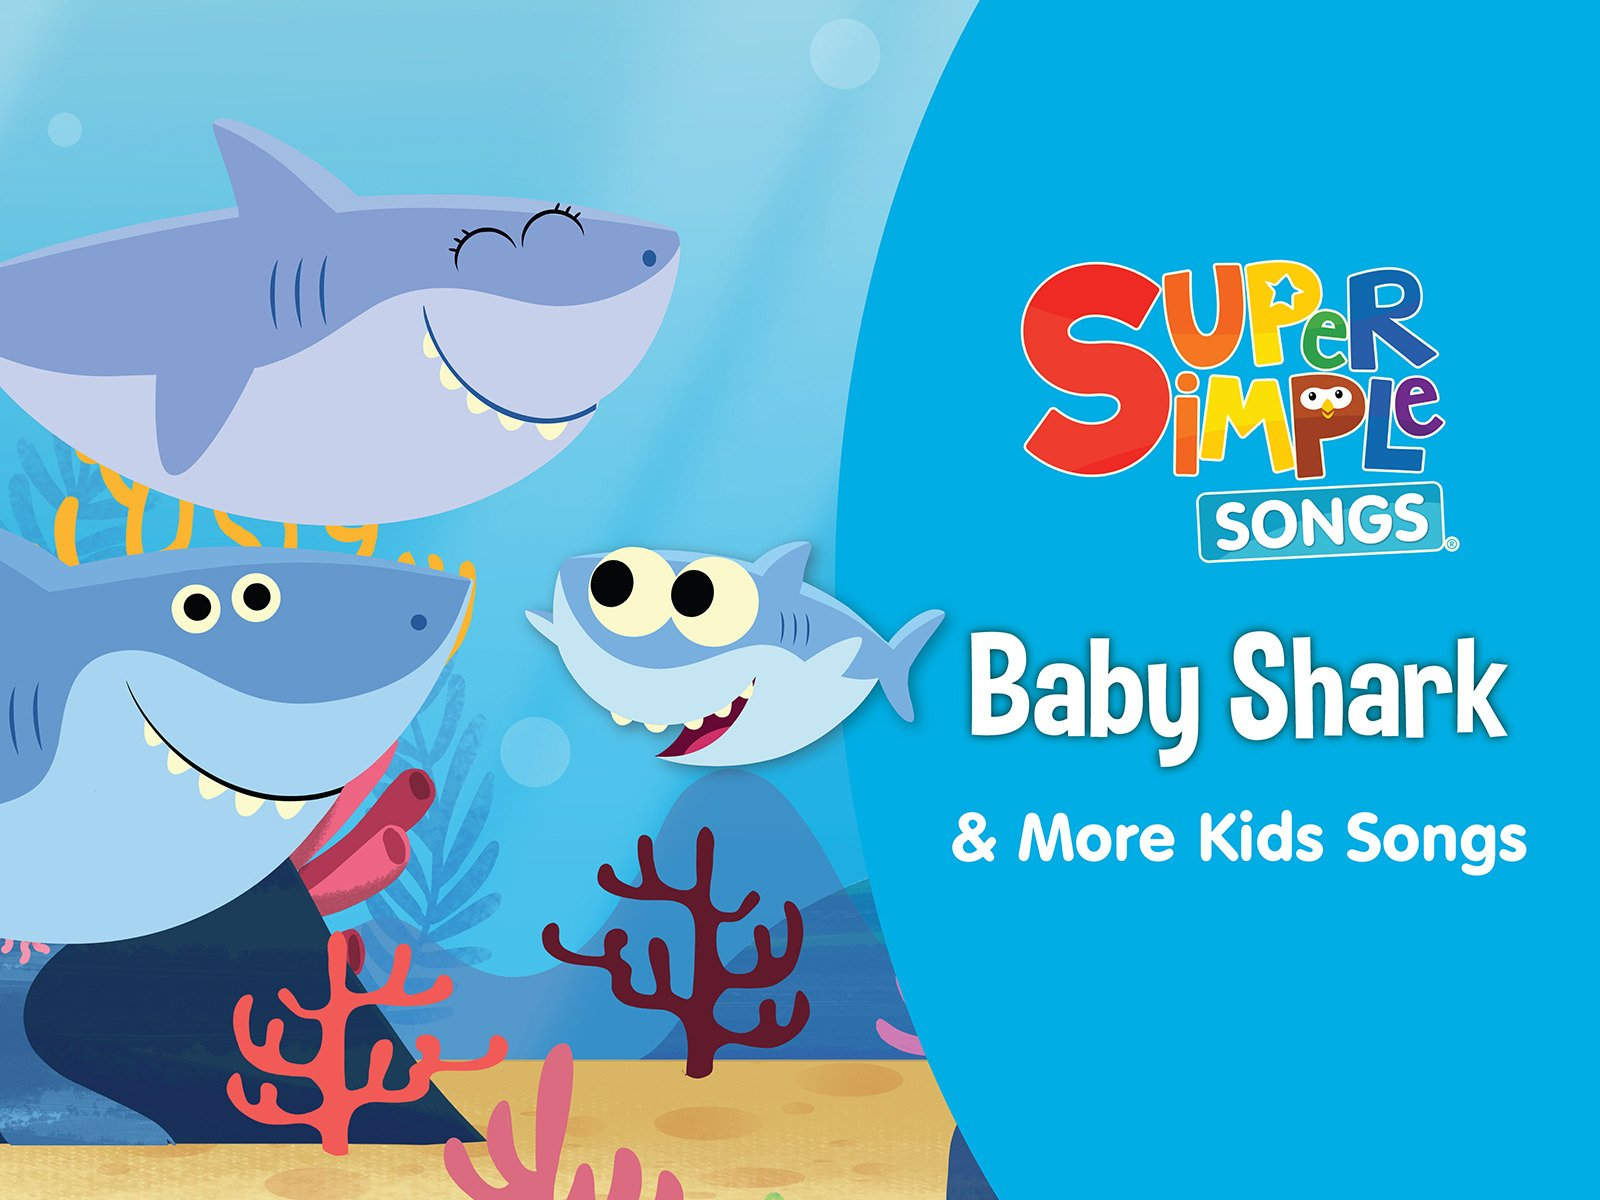 Baby Shark & More Kids Songs - Season 1